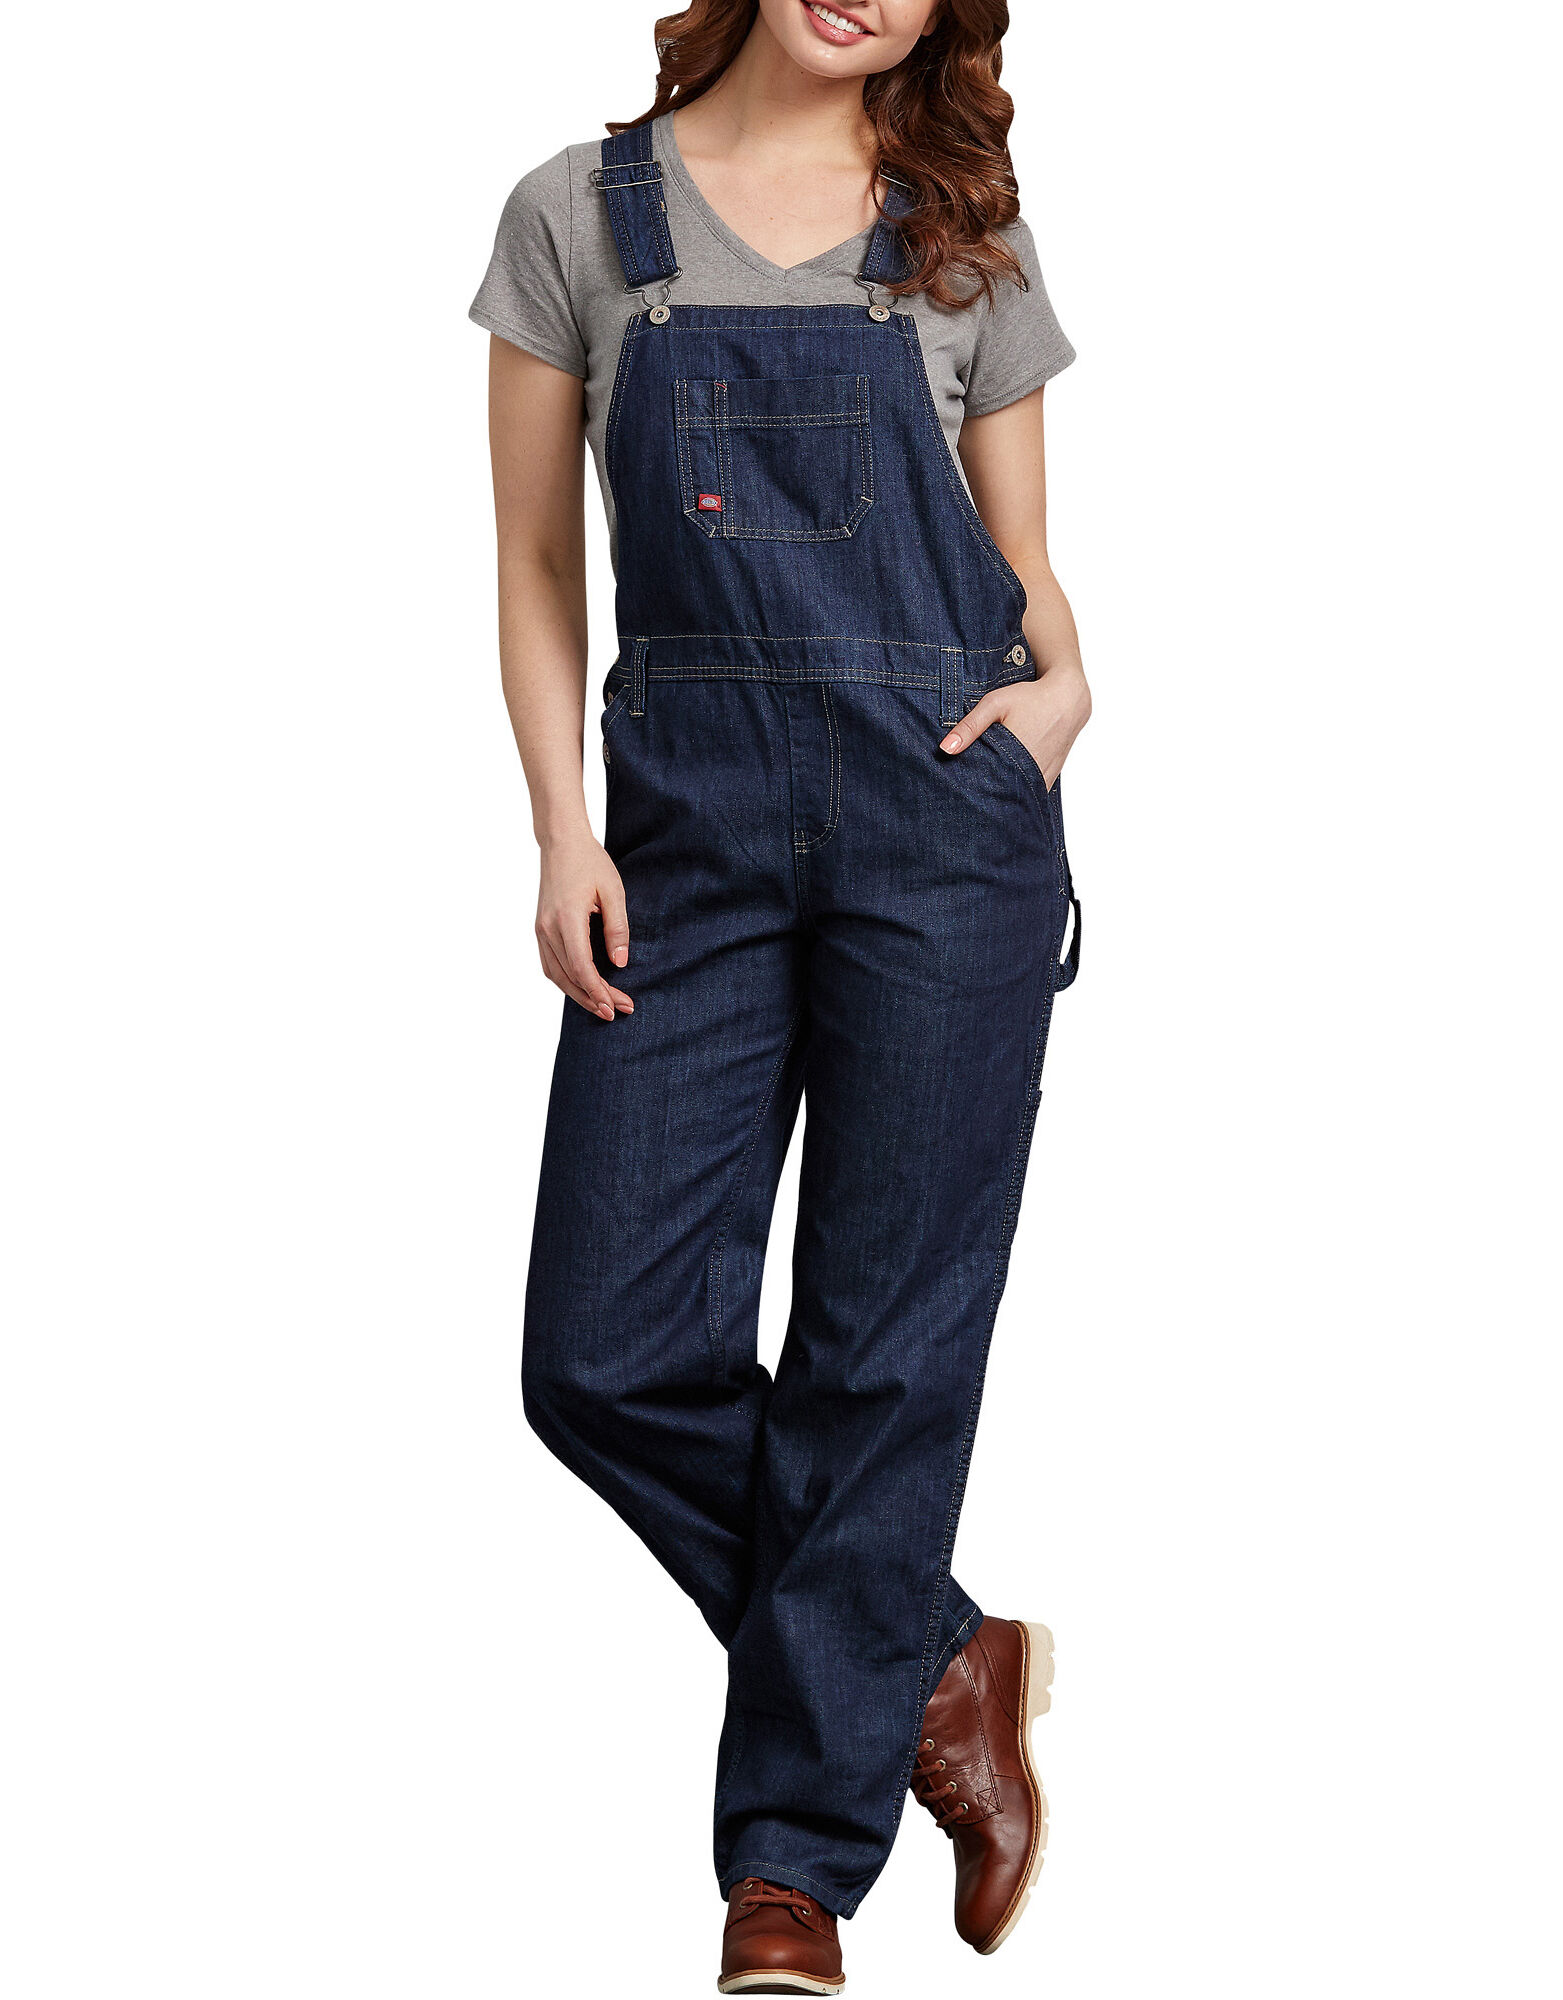 Shop Dickies to find a huge selection of women's clothes for work. All of our women's clothing are stylish, comfortable & durable enough for every day use. Williamson-Dickie Mfg. Co.